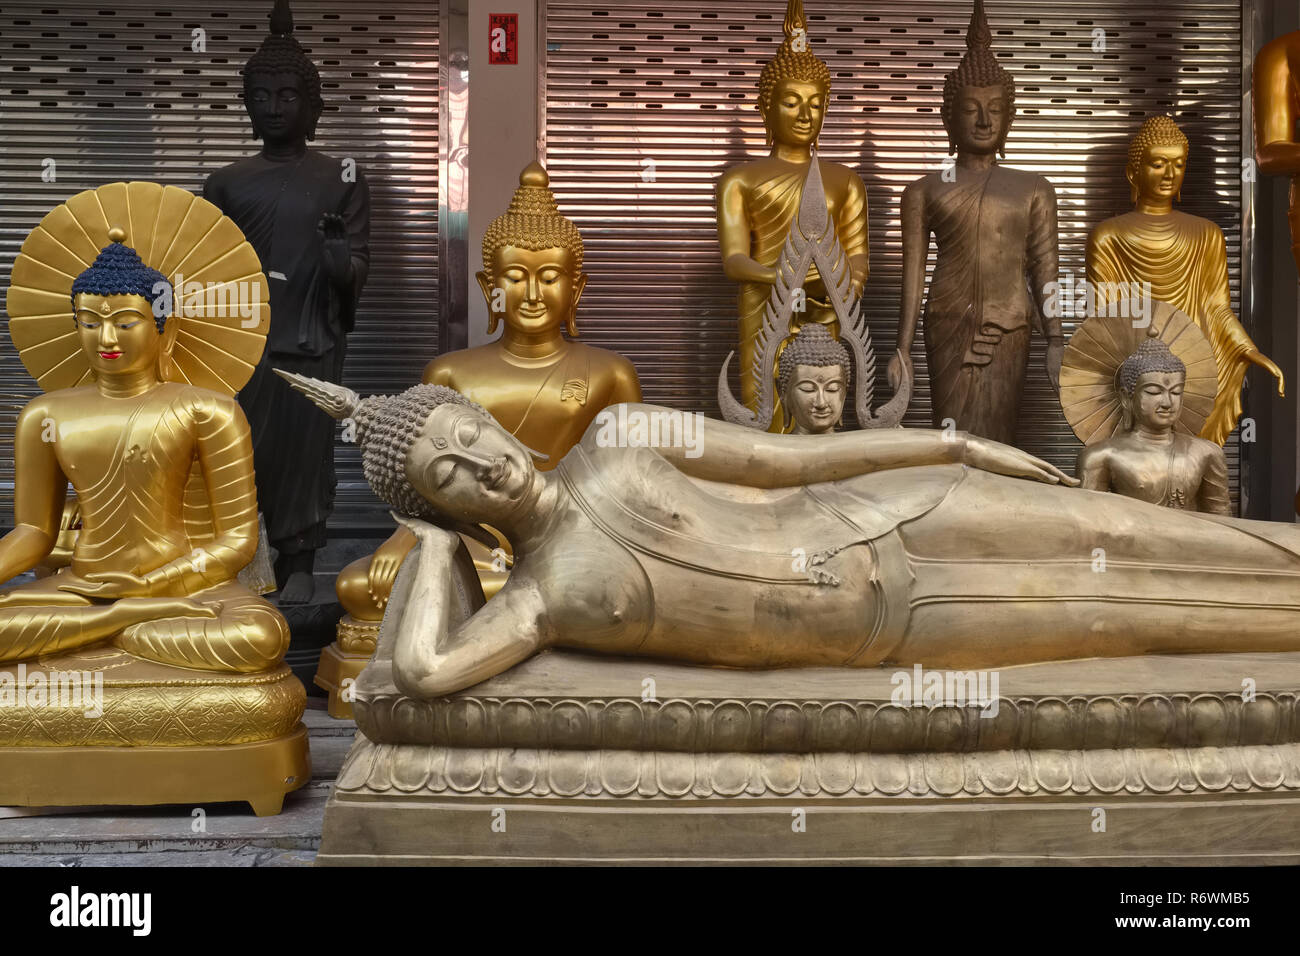 A Reclining Buddha and other Buddha statues outside a factory outlet for religious artifacts in Bamrung Muang Road, Bangkok, Thailand - Stock Image